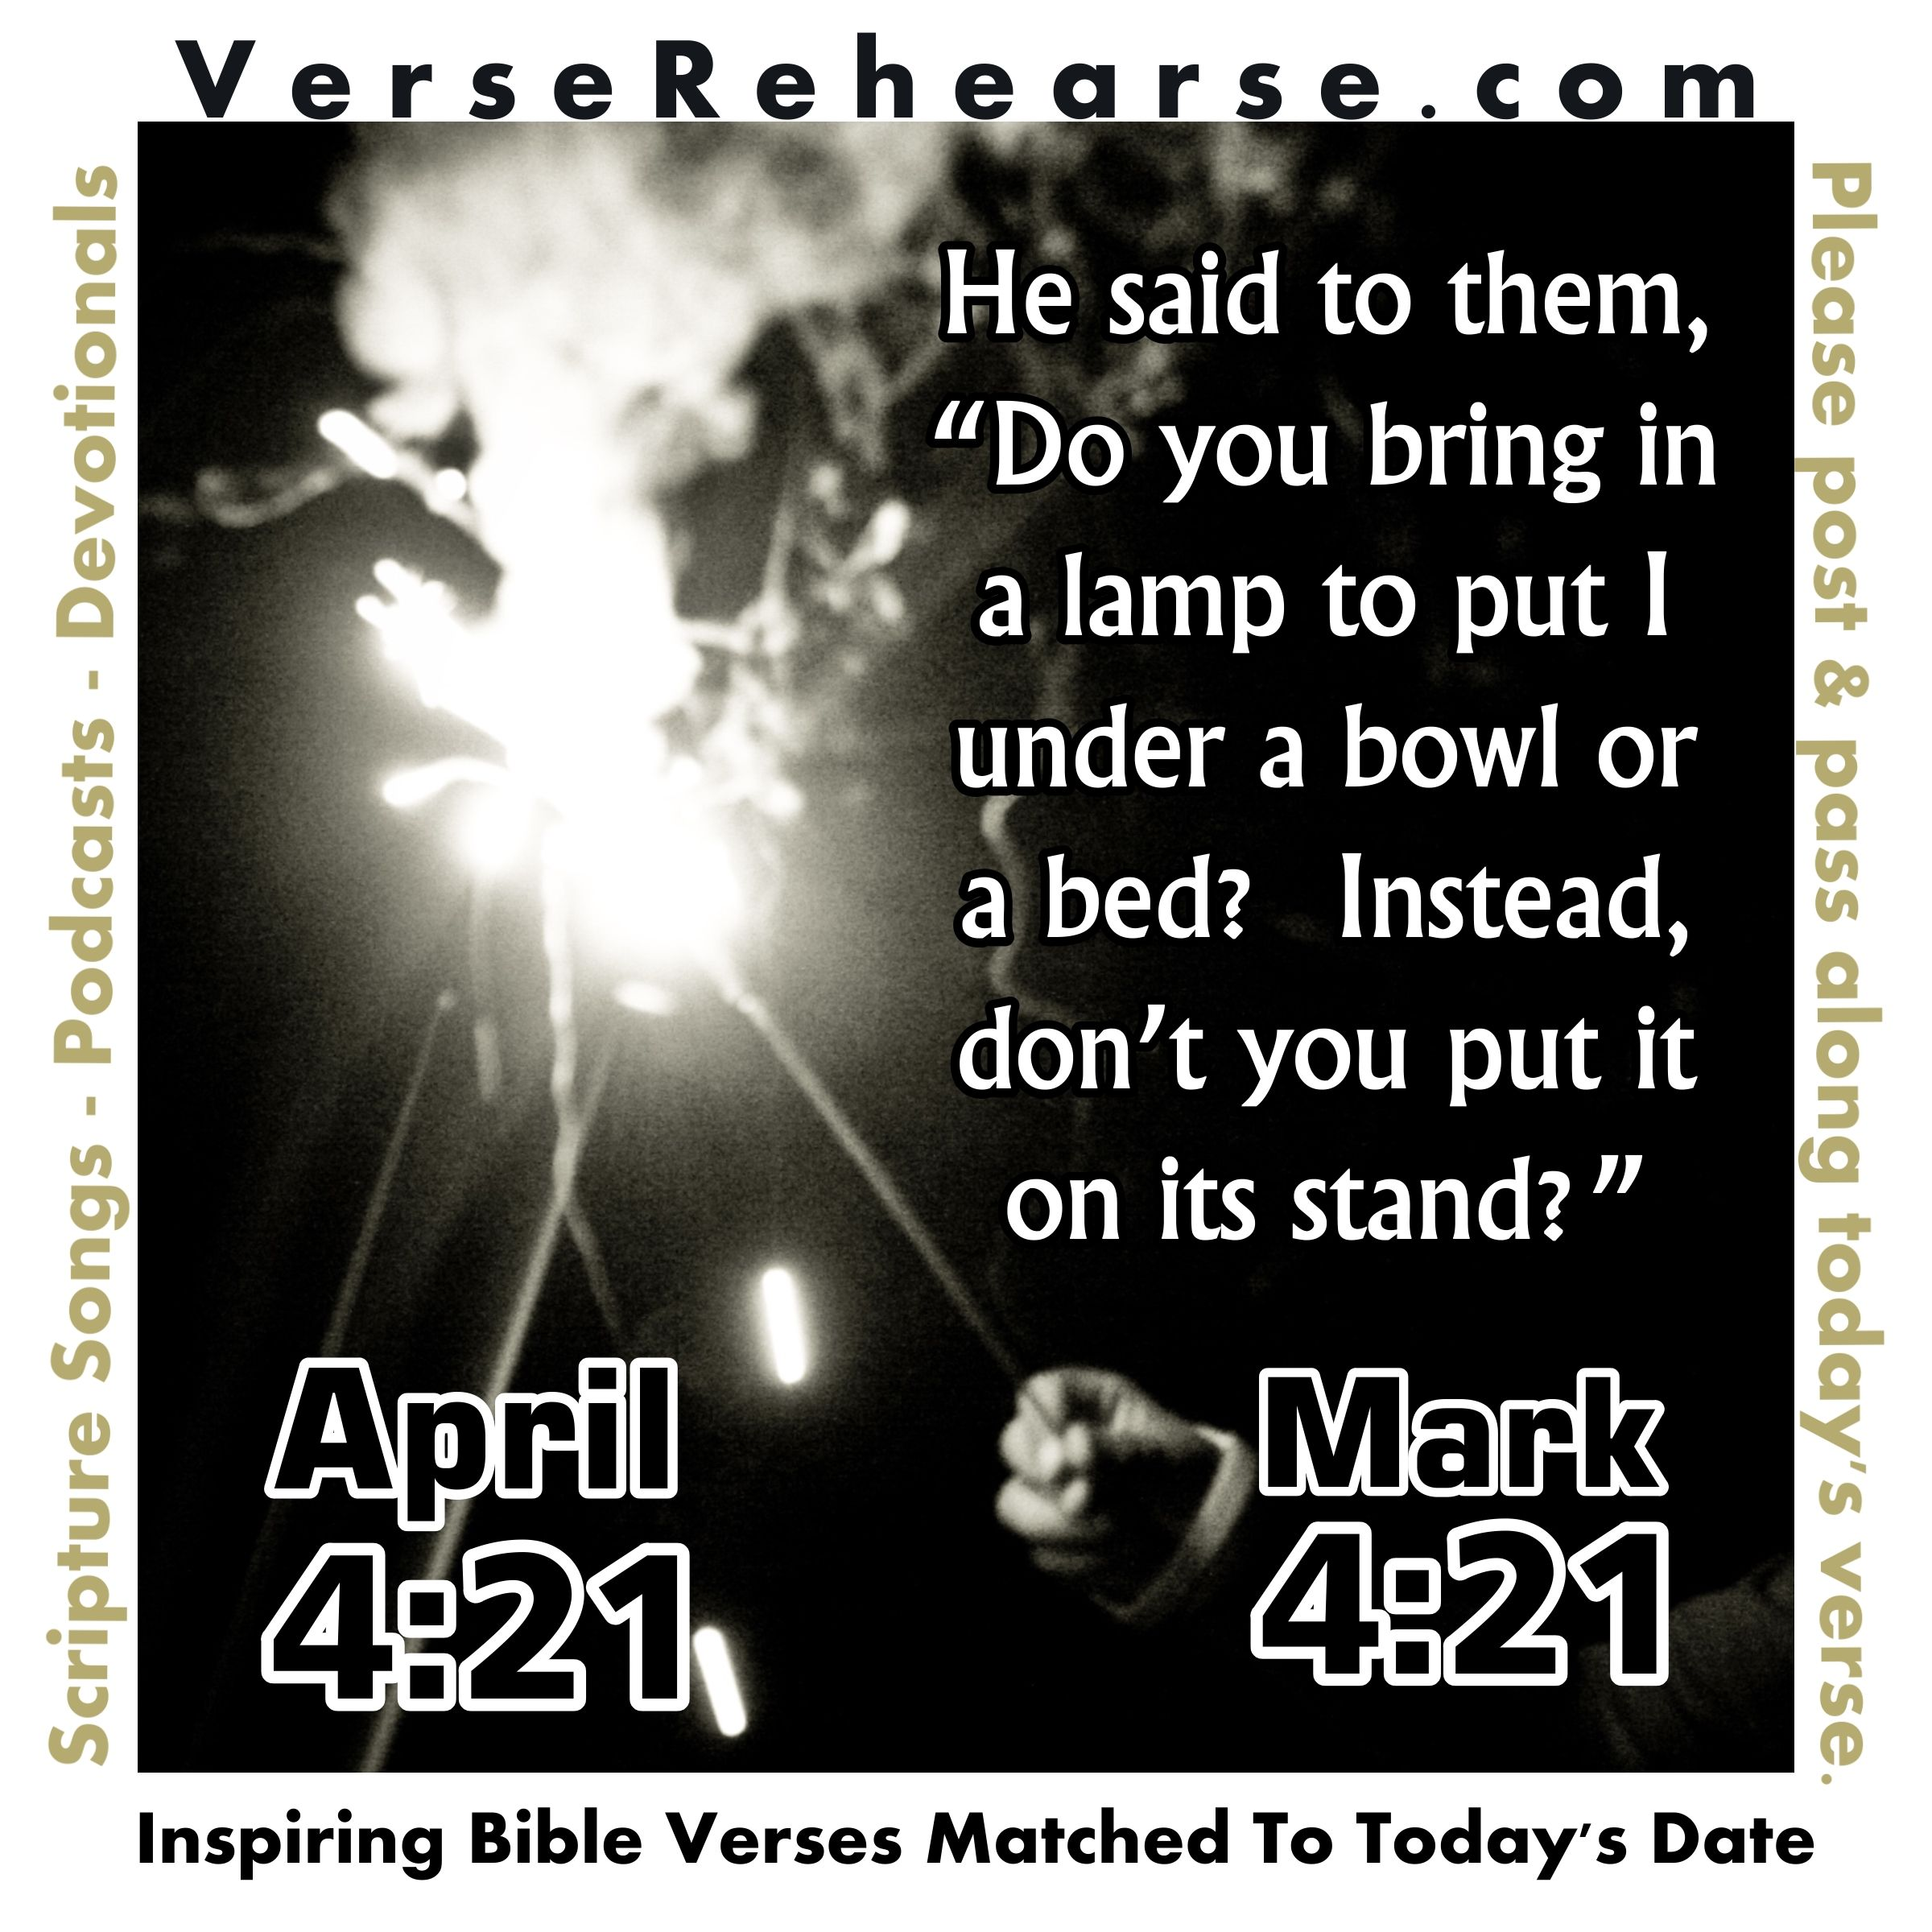 """March 21st (4:21) Mark 4:21 He said to them, """"Do you bring in a lamp to put it under a bowl or a bed?  Instead, don't you put it on its stand?"""""""